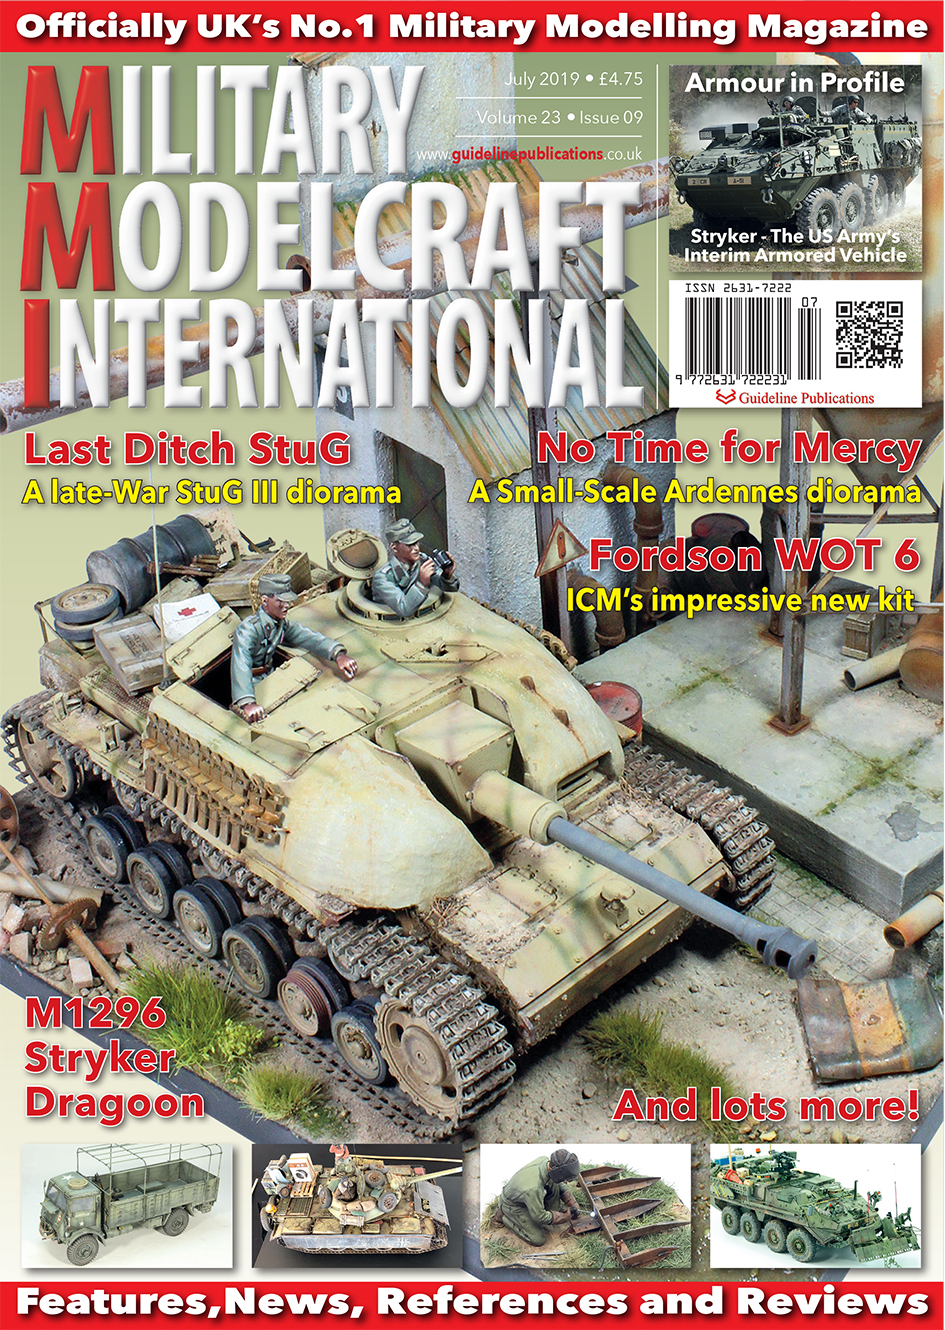 Guideline Publications Military Modelcraft Int July 2019 vol 23-09 - June  2019